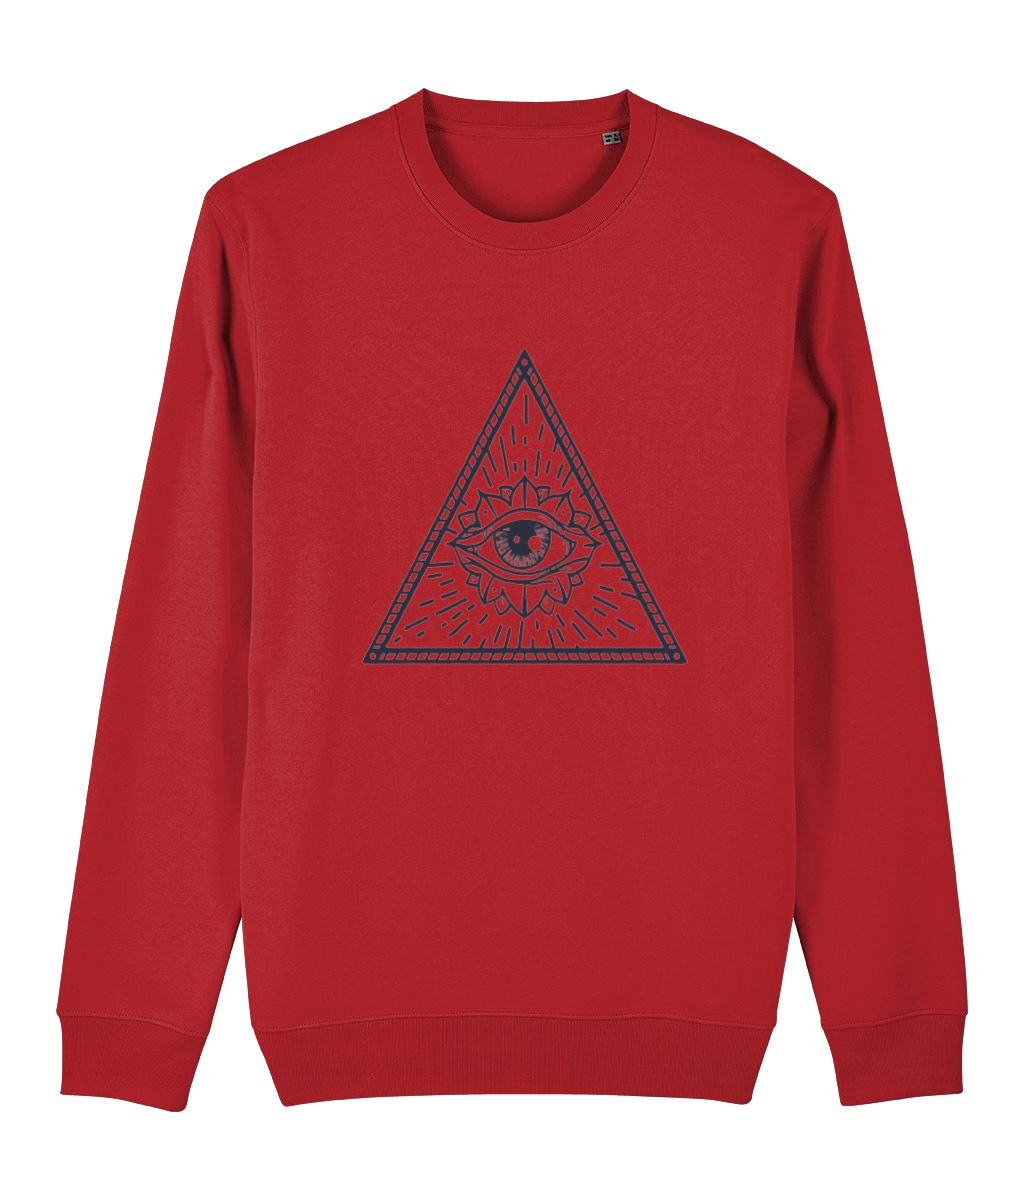 Eye of Providence II Sweatshirt Clothing IndianBelieves Bright Red X-Small